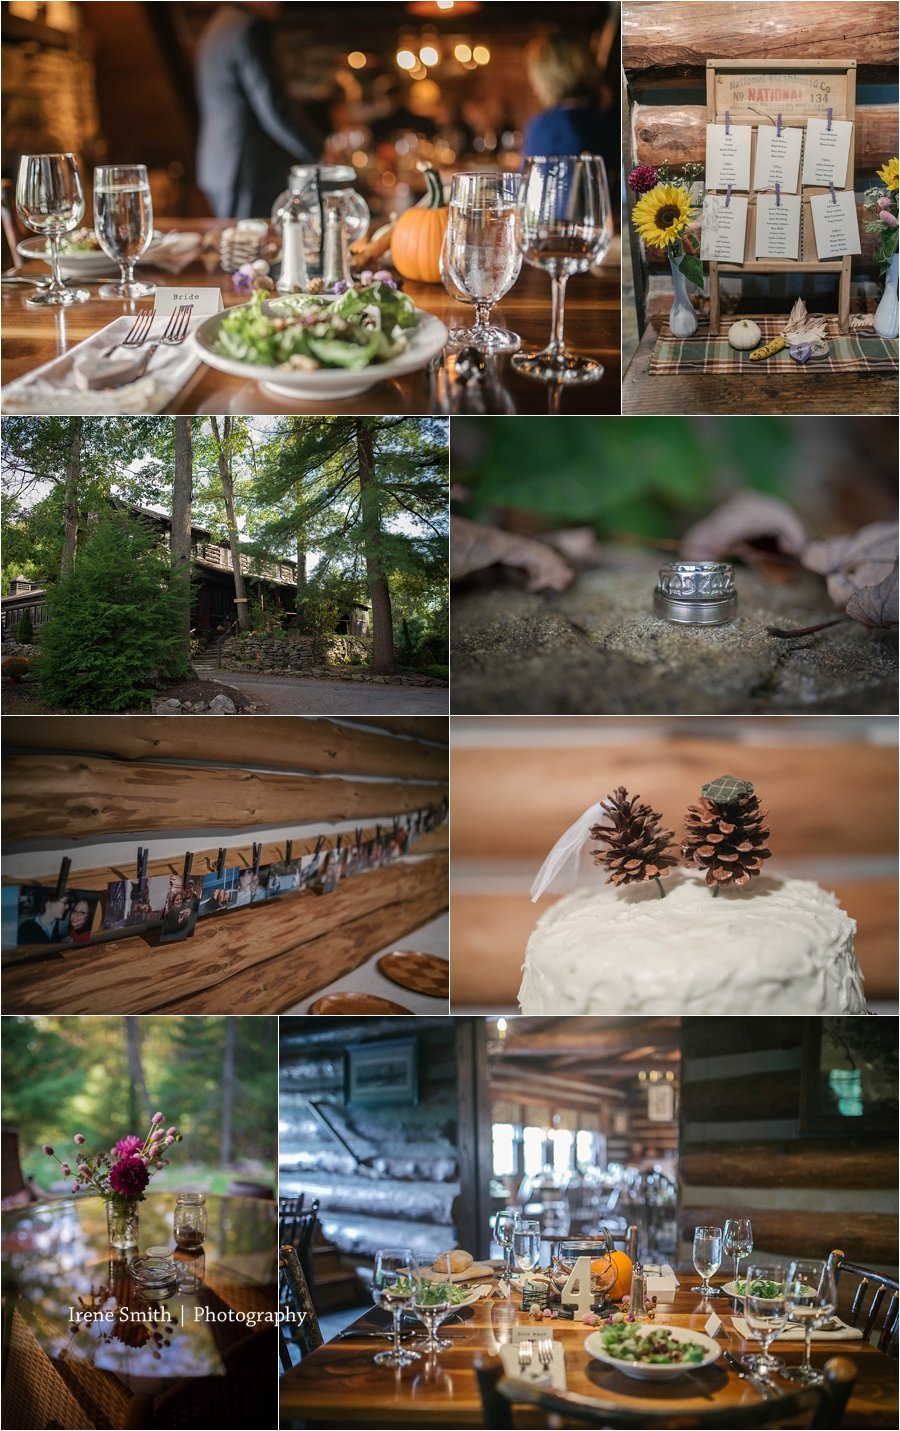 Cooks-Forest-Wedding-Photography-Irene-Smith_0007.jpg